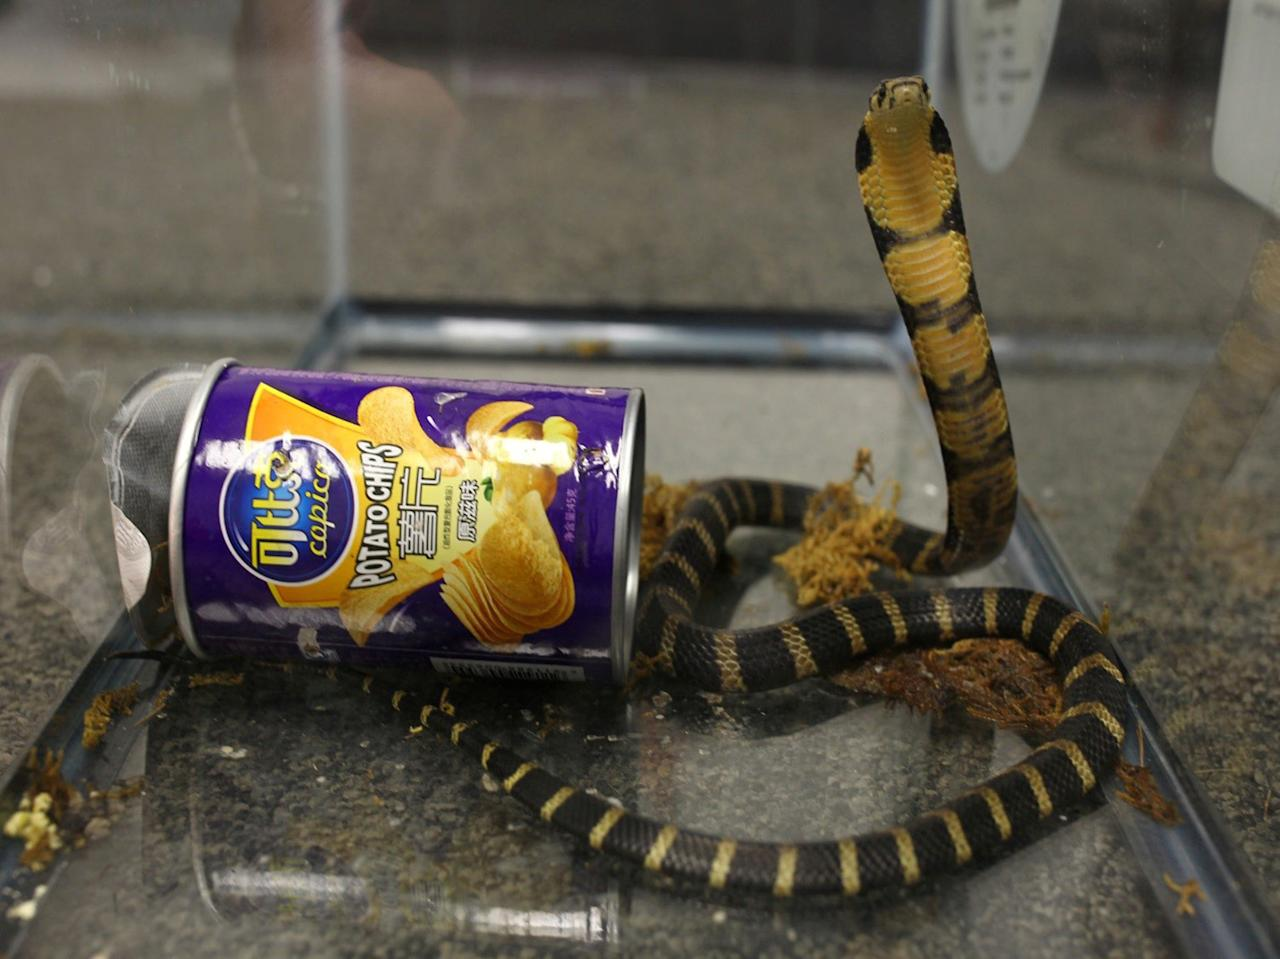 <p>A king cobra snake seen coming out of container of chips in this udated handout photo obtained July 25, 2017. (Photo: United States Attorney's Office Central District of California/Reuters) </p>